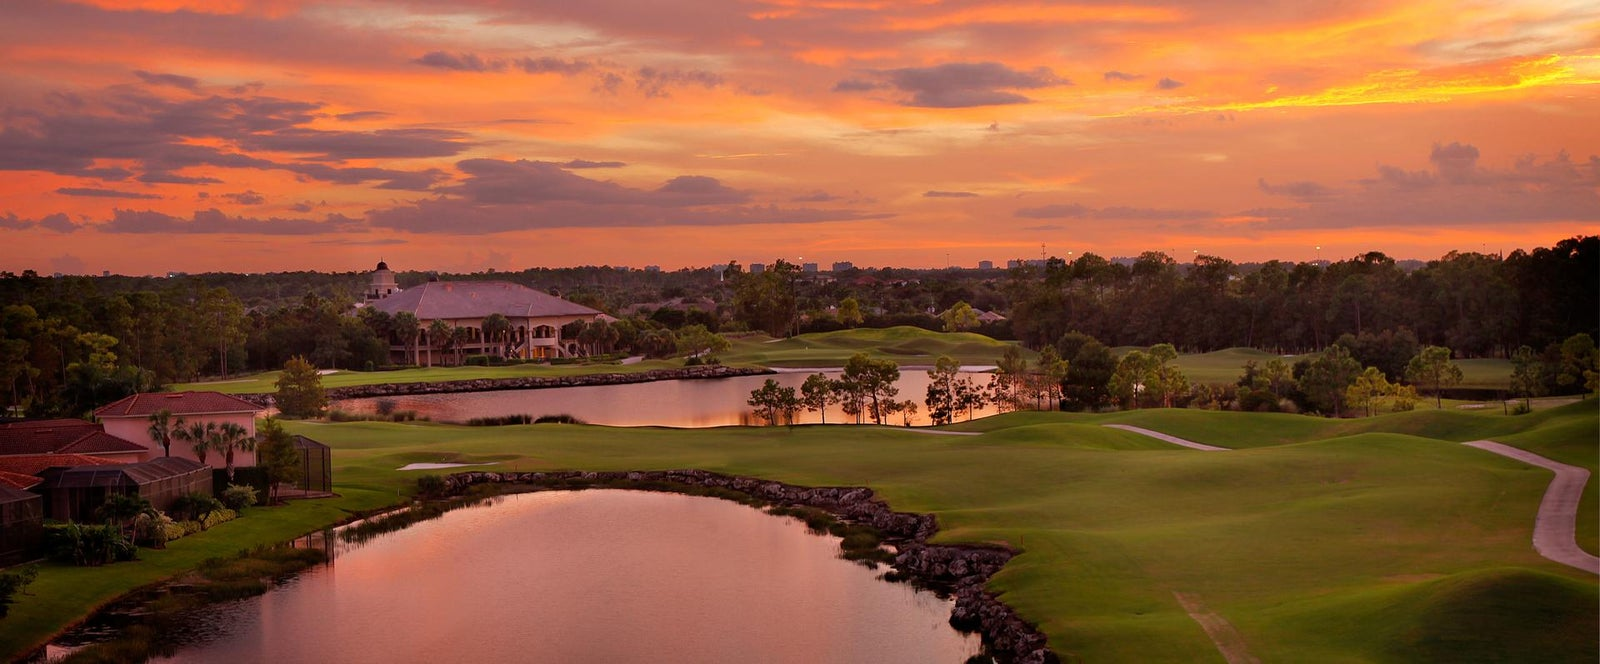 The Club at Olde Cypress in Naples Florida